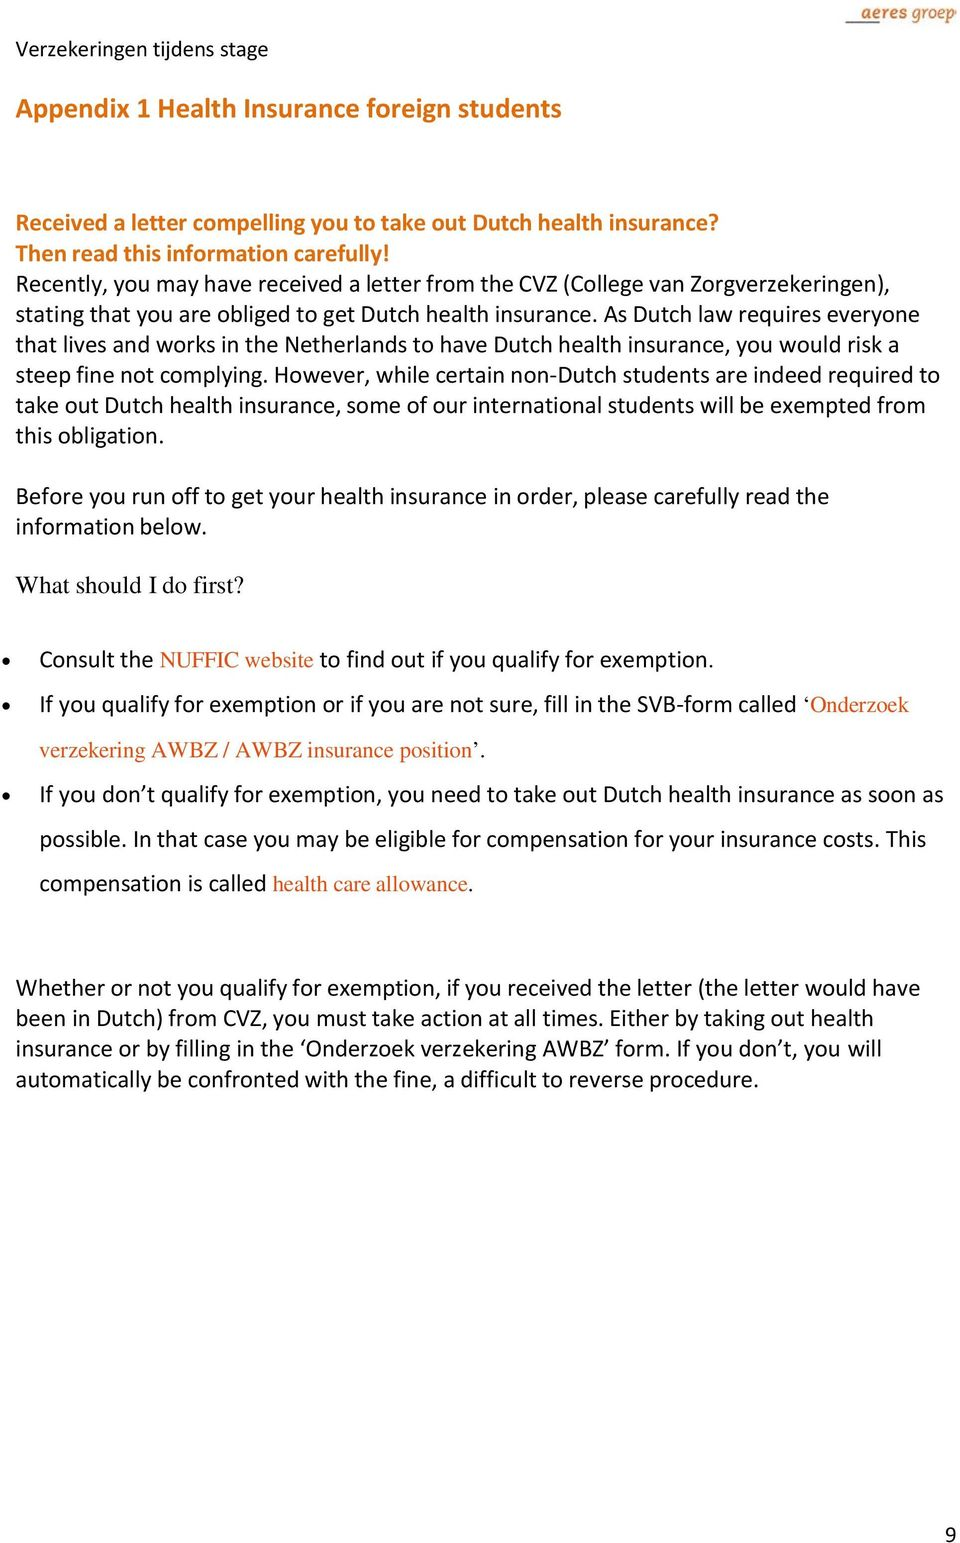 As Dutch law requires everyone that lives and works in the Netherlands to have Dutch health insurance, you would risk a steep fine not complying.